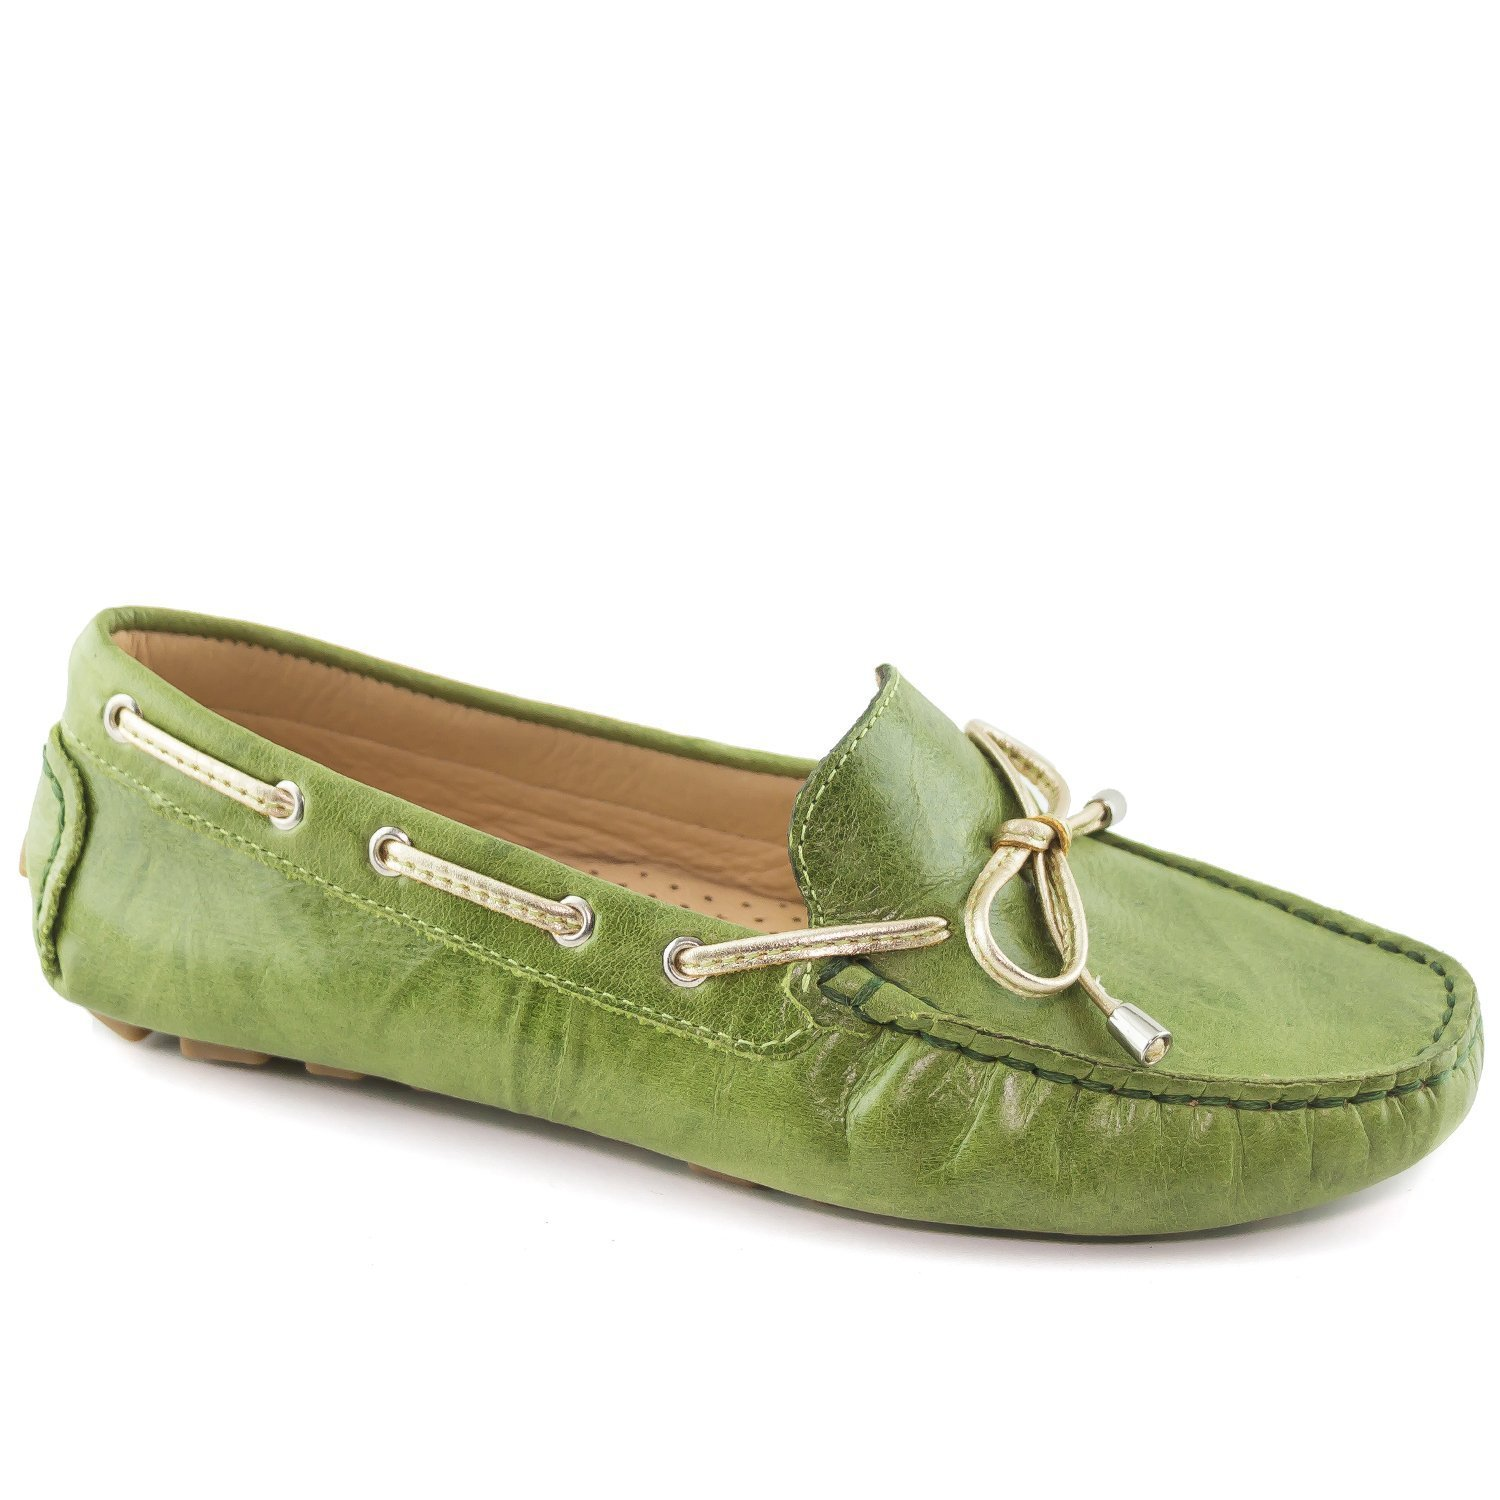 Driver Club USA Women's Genuine Leather Made in Brazil Nantucket Classic Lime Green Crush 9